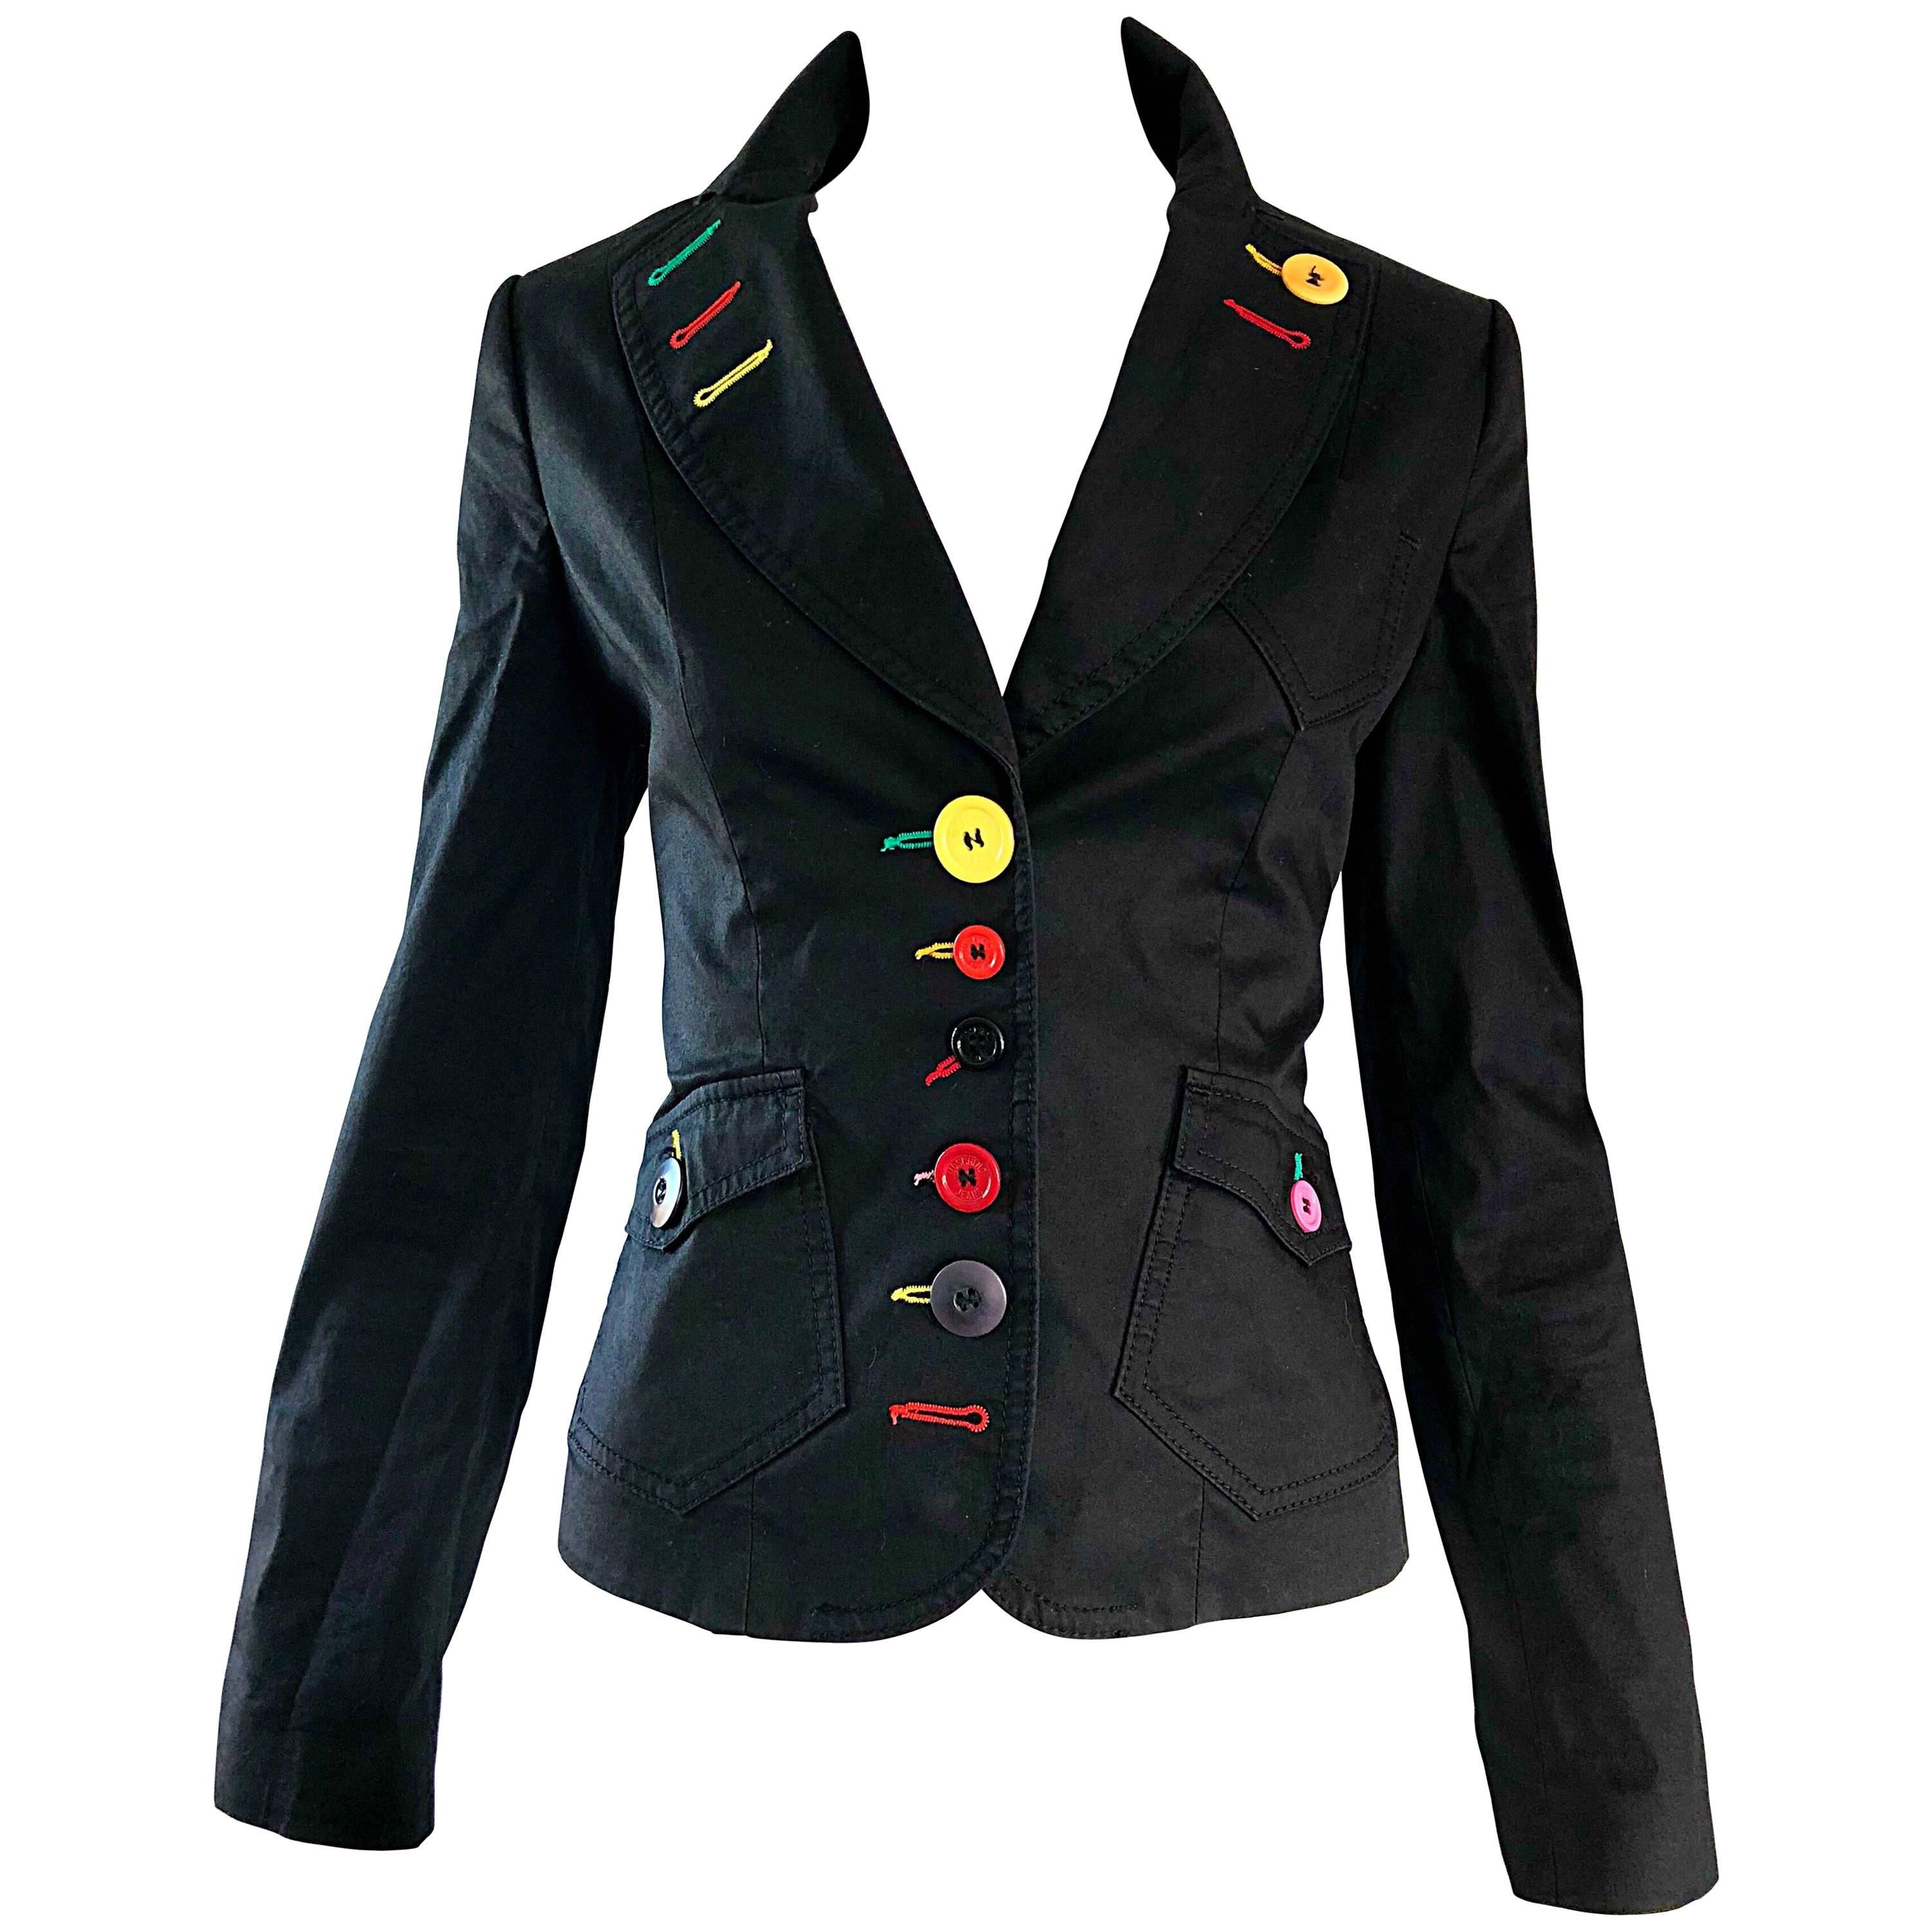 Vintage Moschino 1990s Black Stylish Rainbow Buttons Fitted 90s Blazer Jacket